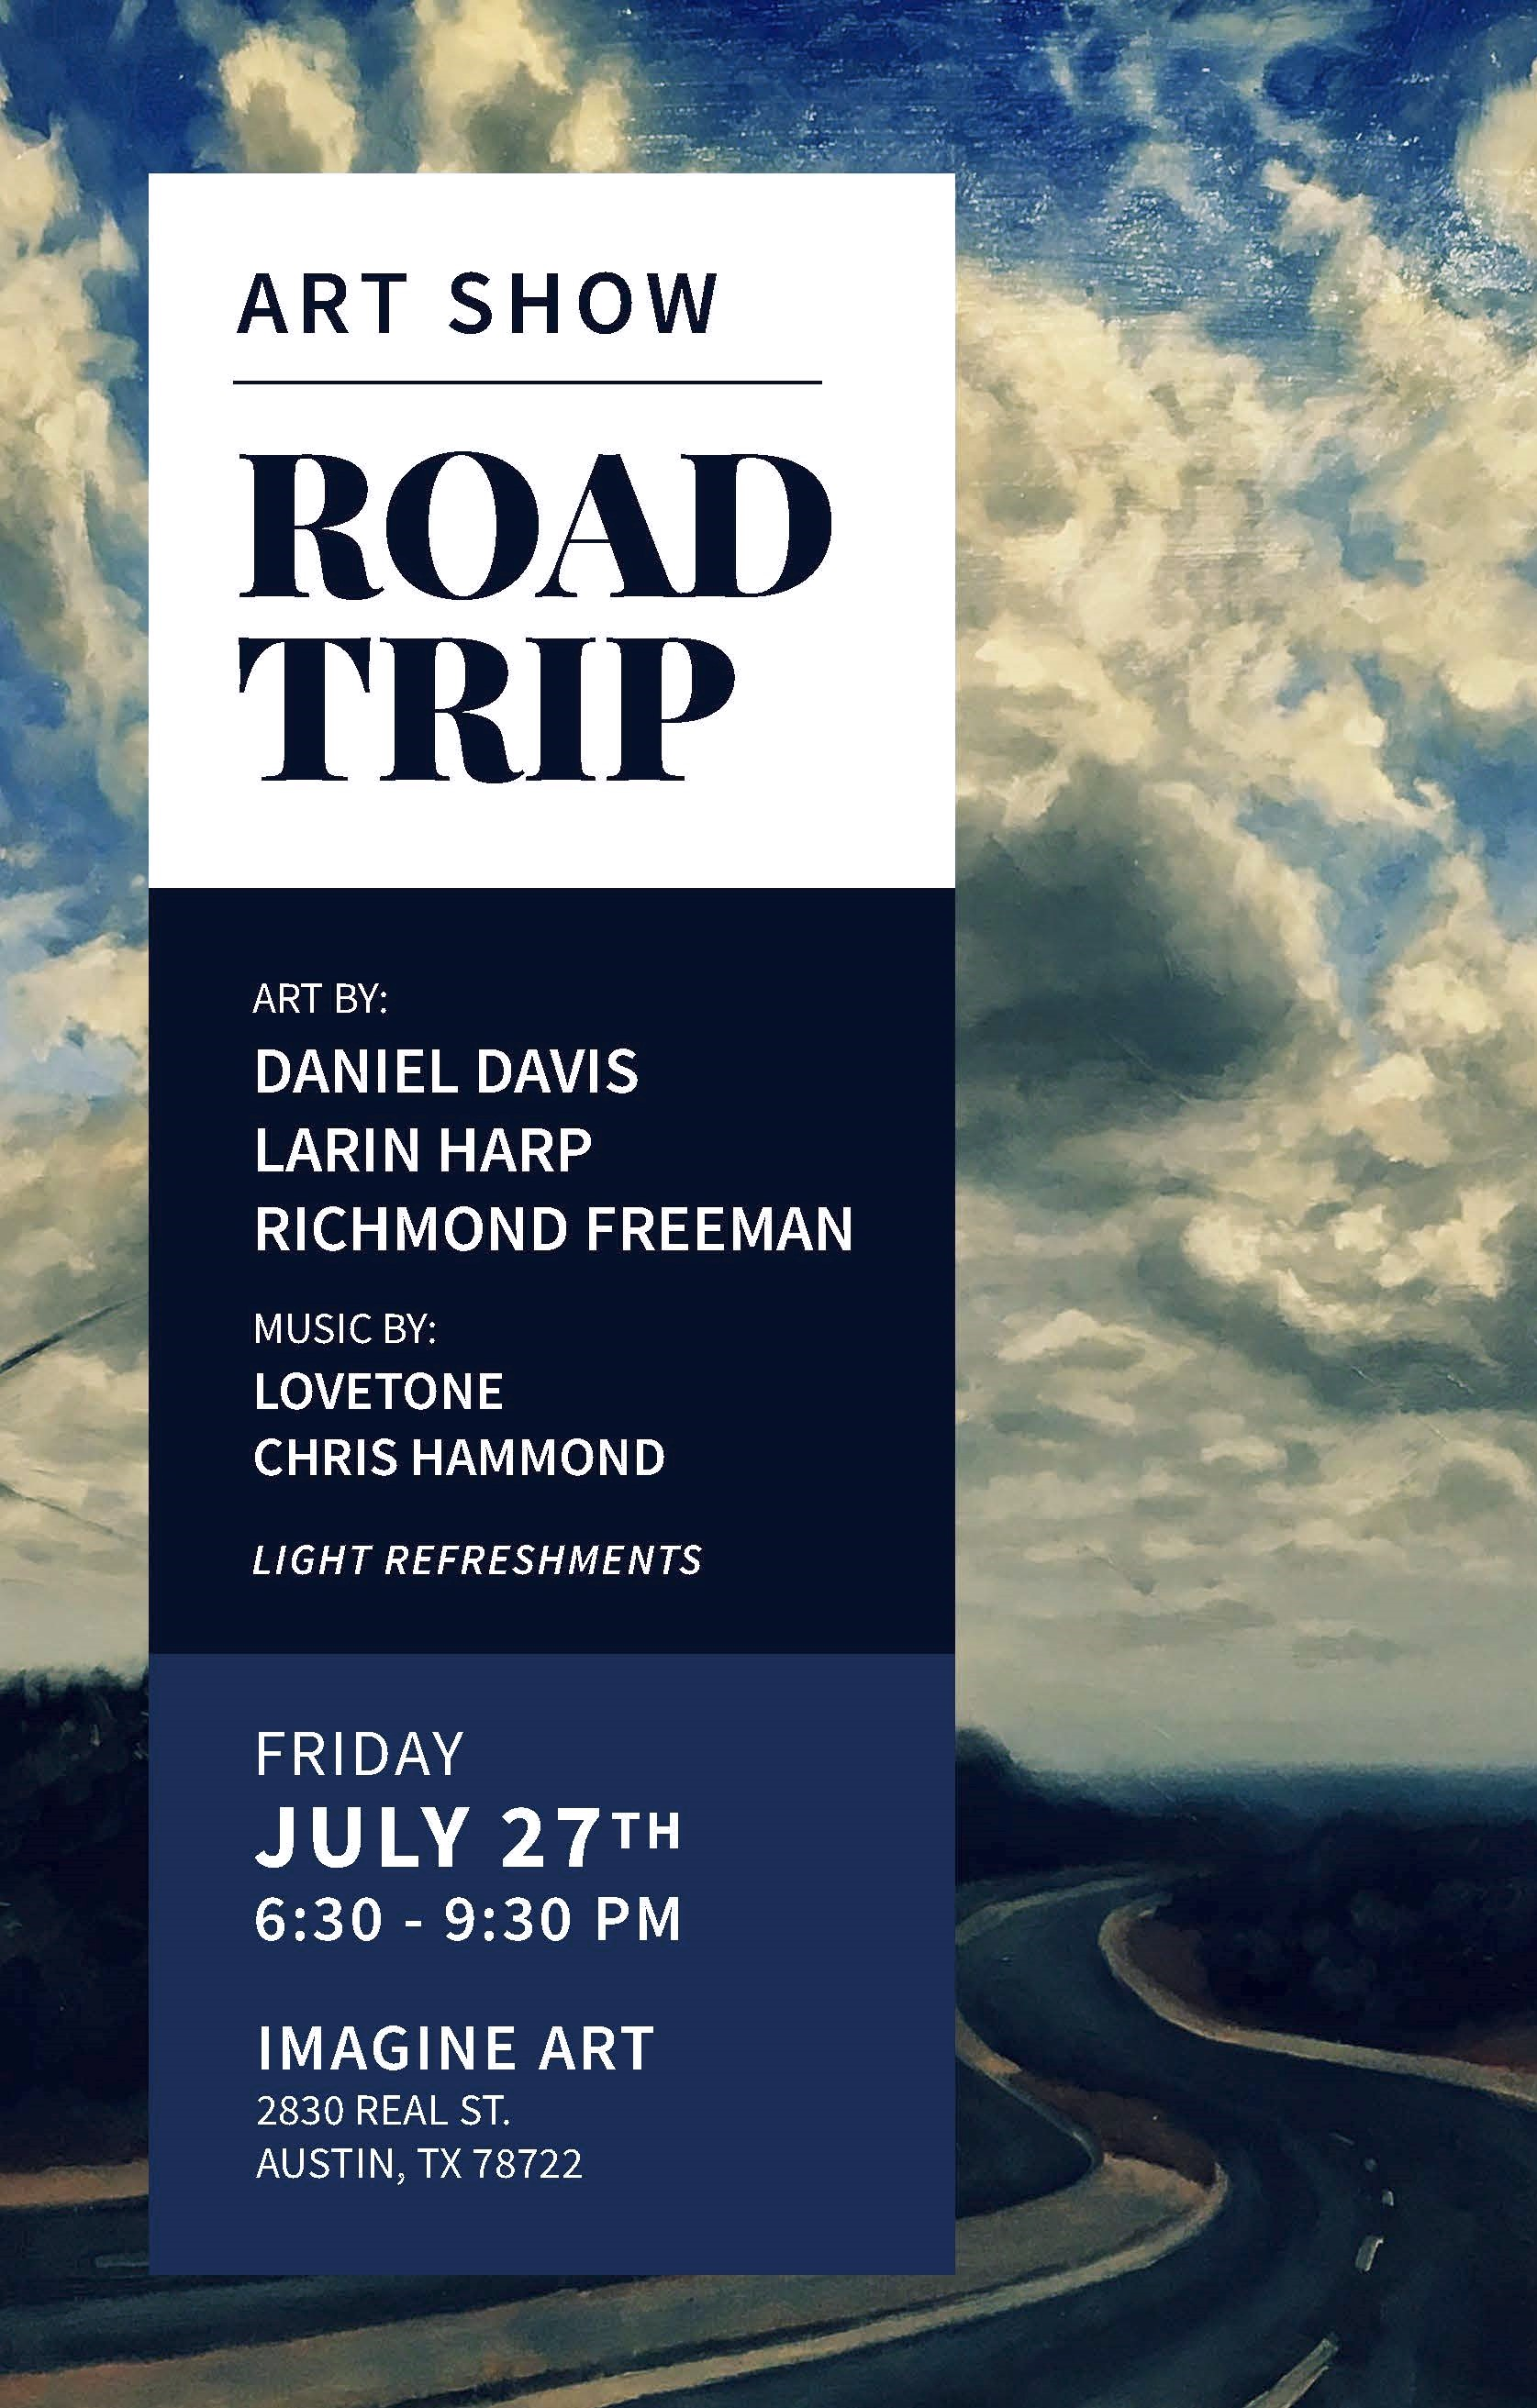 ART SHOW - ROAD TRIPsets off to capture and celebrate three different artists from our Imagine Art community, Larin Harp, Daniel Davis, and Richmond Freeman. Charismatic cars and trucks in clay by prolific artist Larin Harp set the pace for adventure, calling us to throw caution to the wind, and hit the open road. We travel from the congestion of urban dwelling and tall buildings in Daniel Davis' sophisticated city scapes into breathable vistas of nature – think: babbling brooks, cypress trees, open prairies, and hill country havens, offering pause, reflection, and respite. And what road trip wouldn't be complete with a photo or two to document the sweet expanse of a sunset or a moment in time, and in ourselves, where all seemed right, possibility abounding? Luckily Richmond Freeman provides us with cameras of clay to click that magic moment, a tangible token of our freedom combined with the spirit of the open road.We hope you enjoy this exhibit and take your own trip ... whether down the highway or simply within yourself.